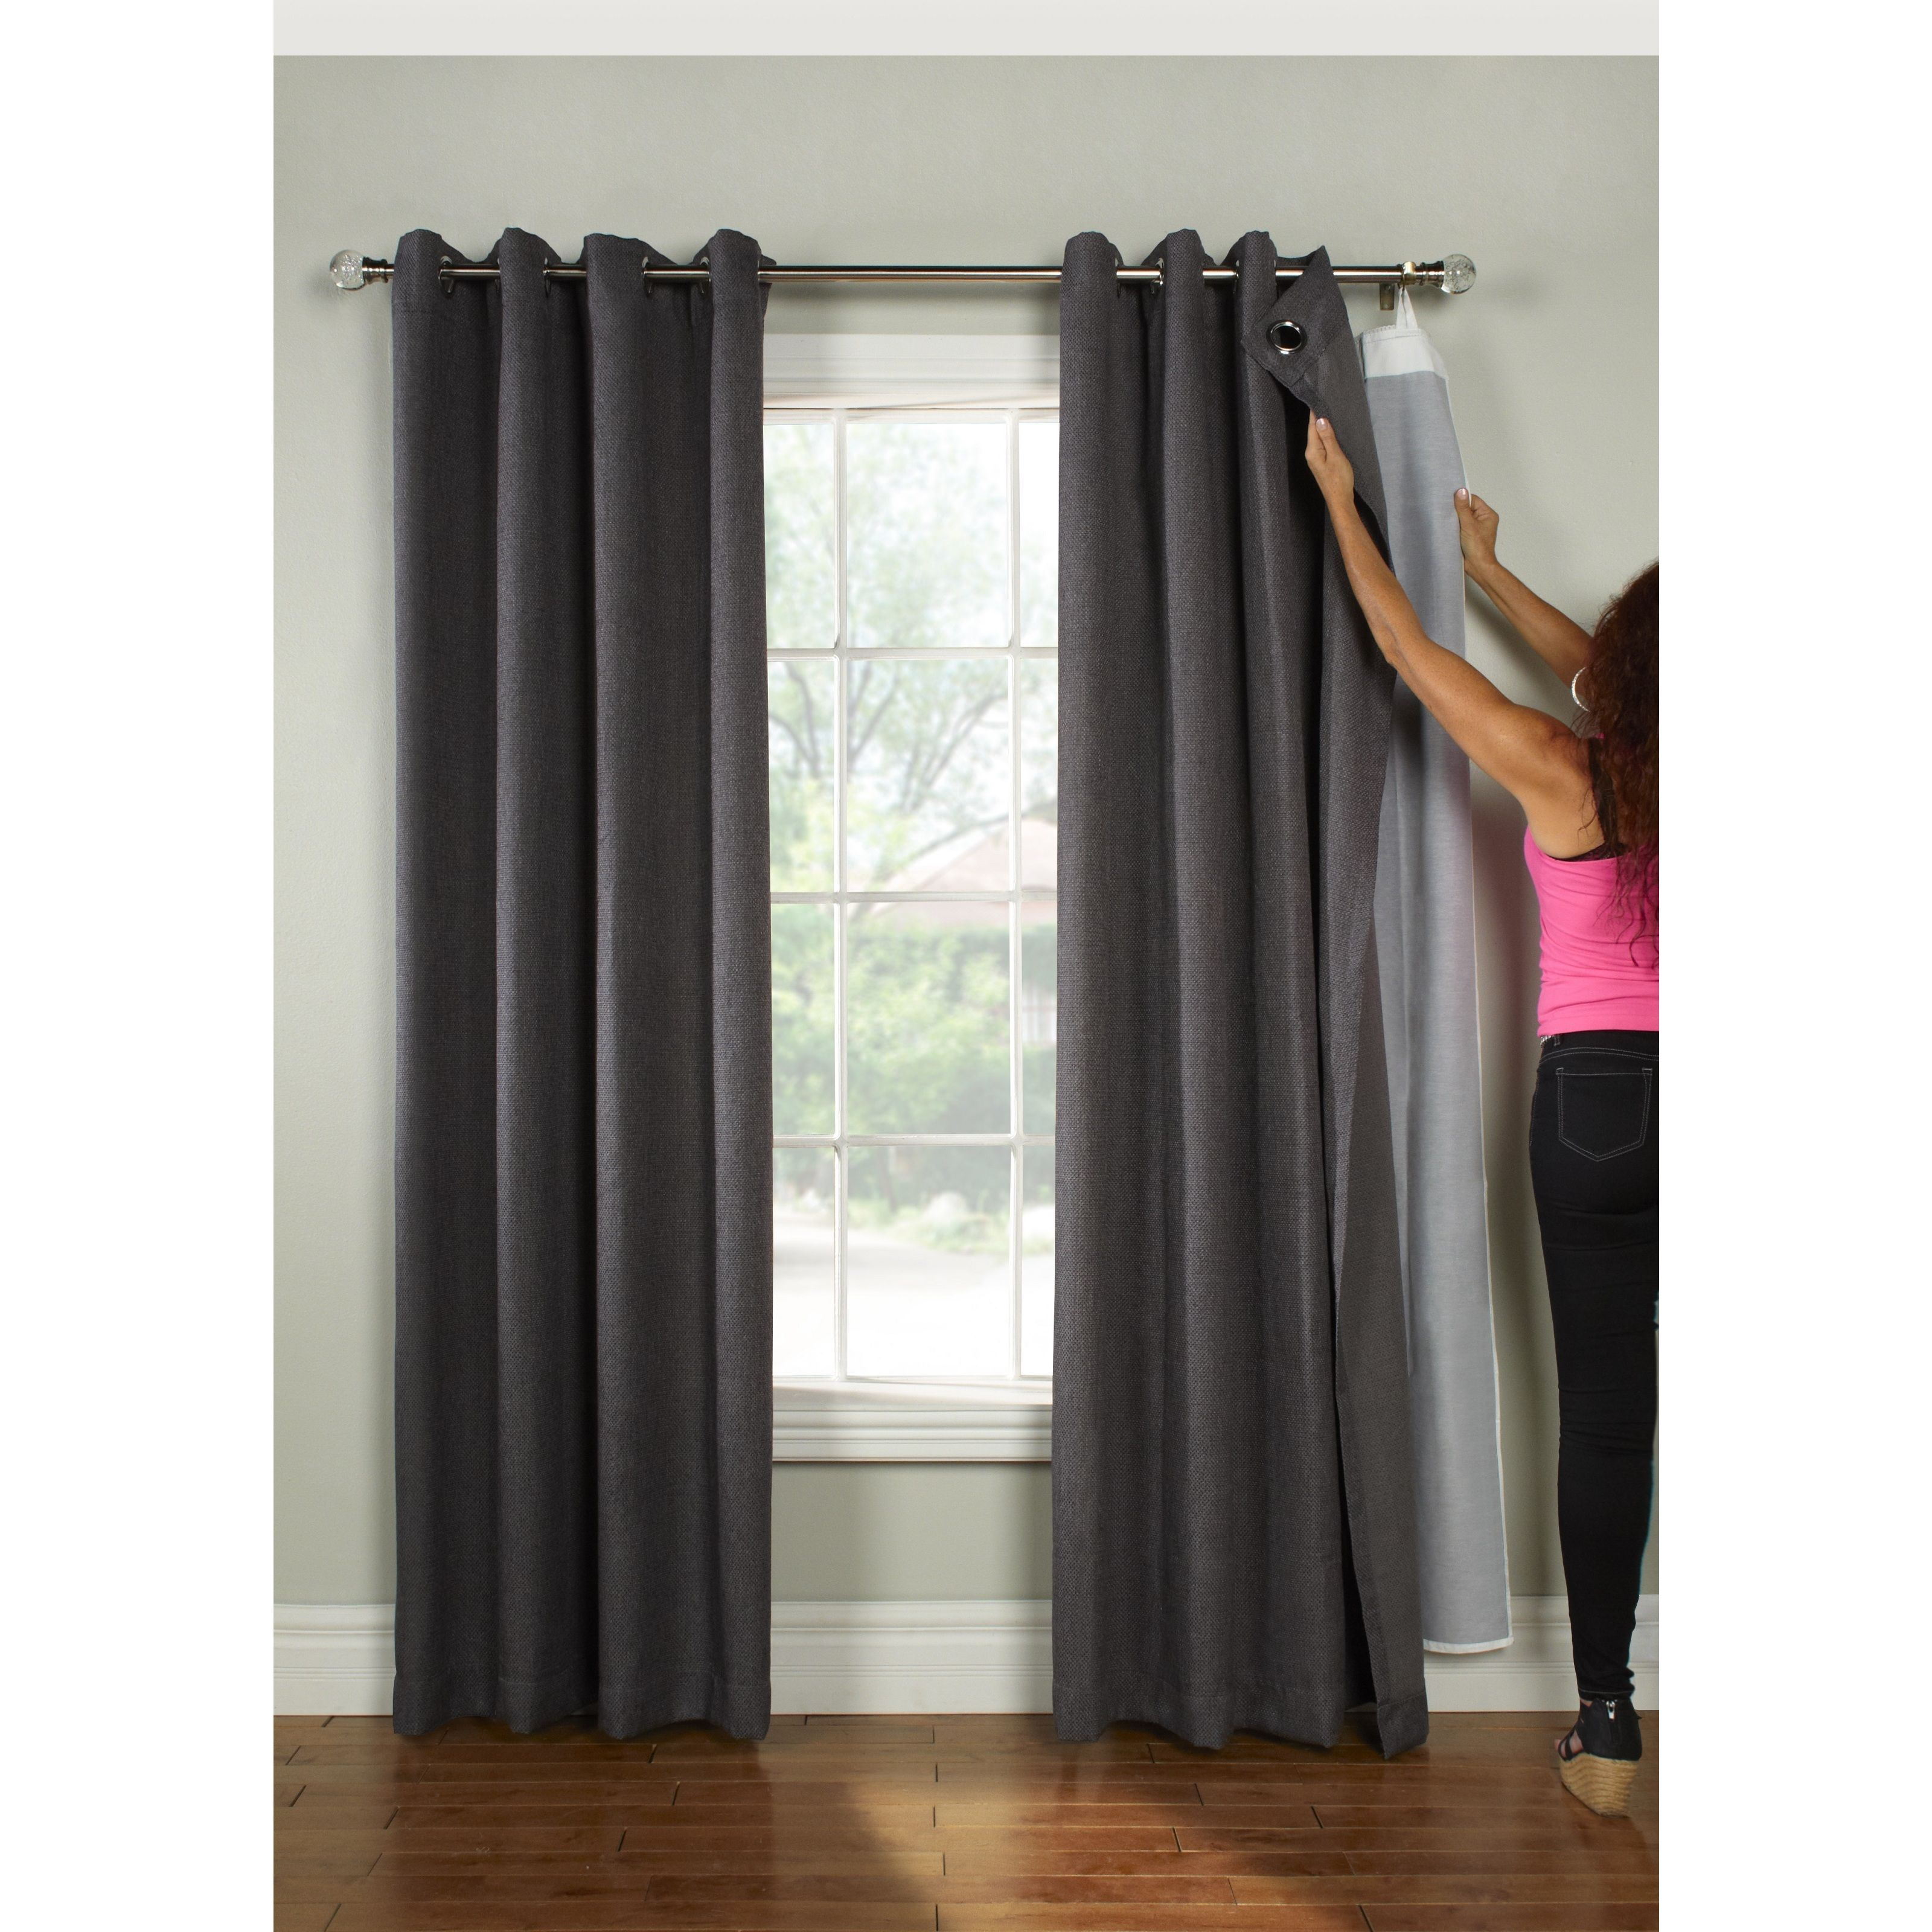 curtains curtain drapes for drape pin ultimate less white blackout universal liner